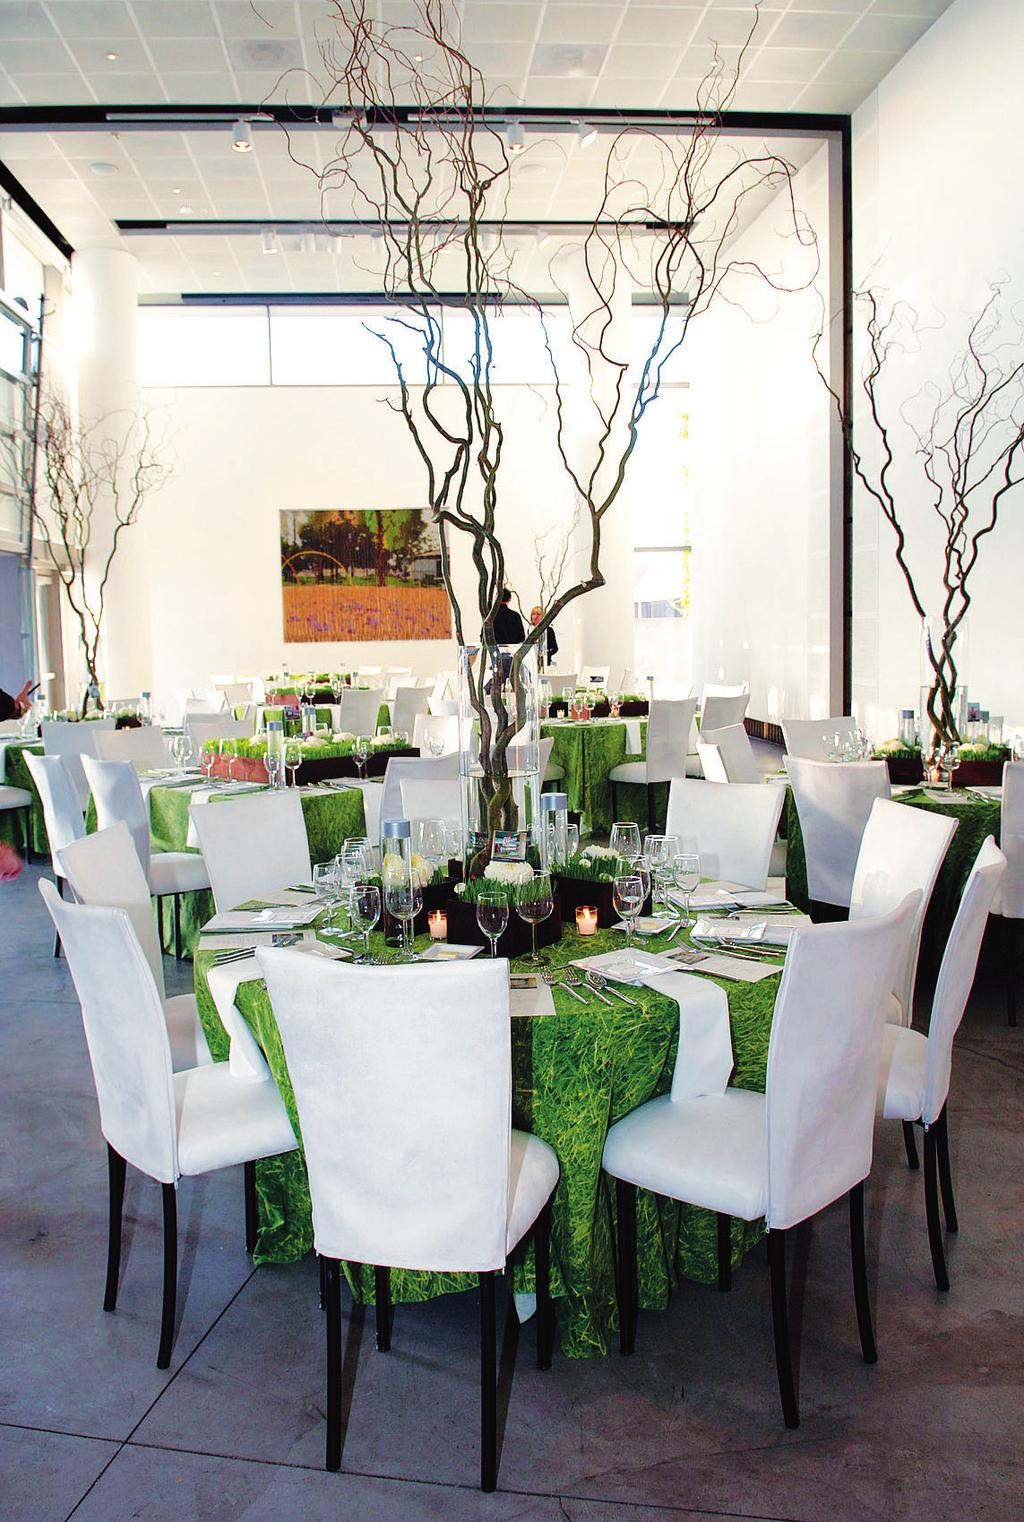 WEDDINGS AND SPECIAL EVENTS The Orange County Museum of Art provides a blank canvas